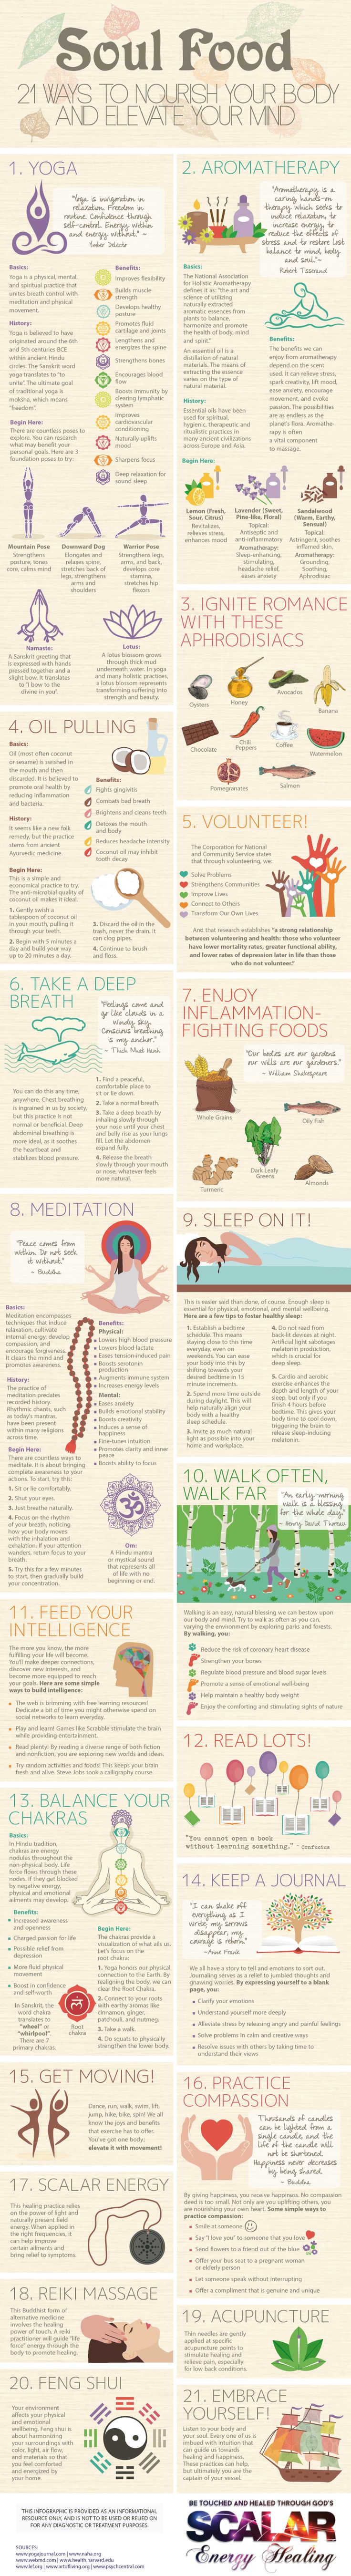 21 Ways to Nourish Your Body and Elevate Your Mind #infographic #Health